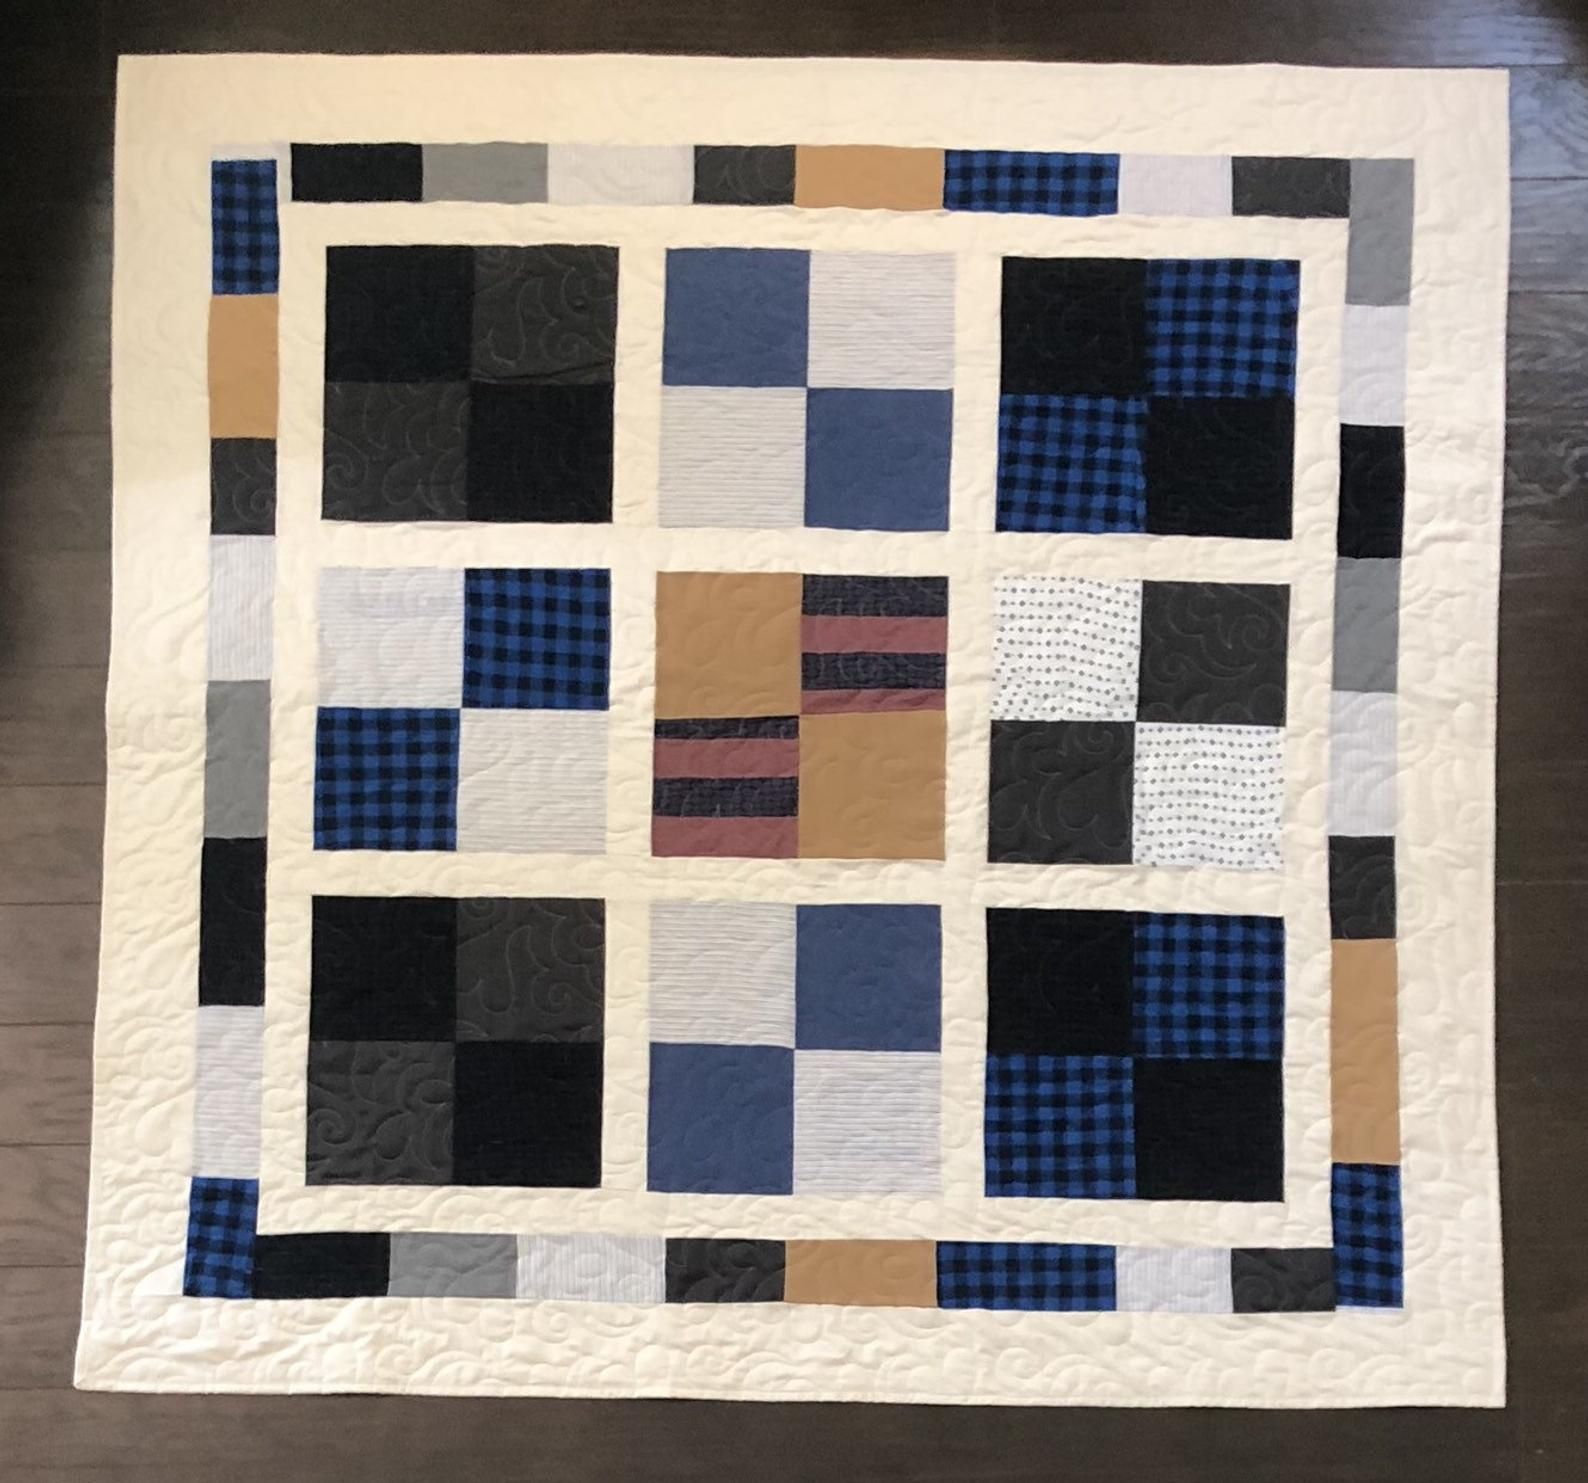 be7c63fdd15830c82e50fb1bb4227af5 - Better Homes And Gardens Solid Border Quilt